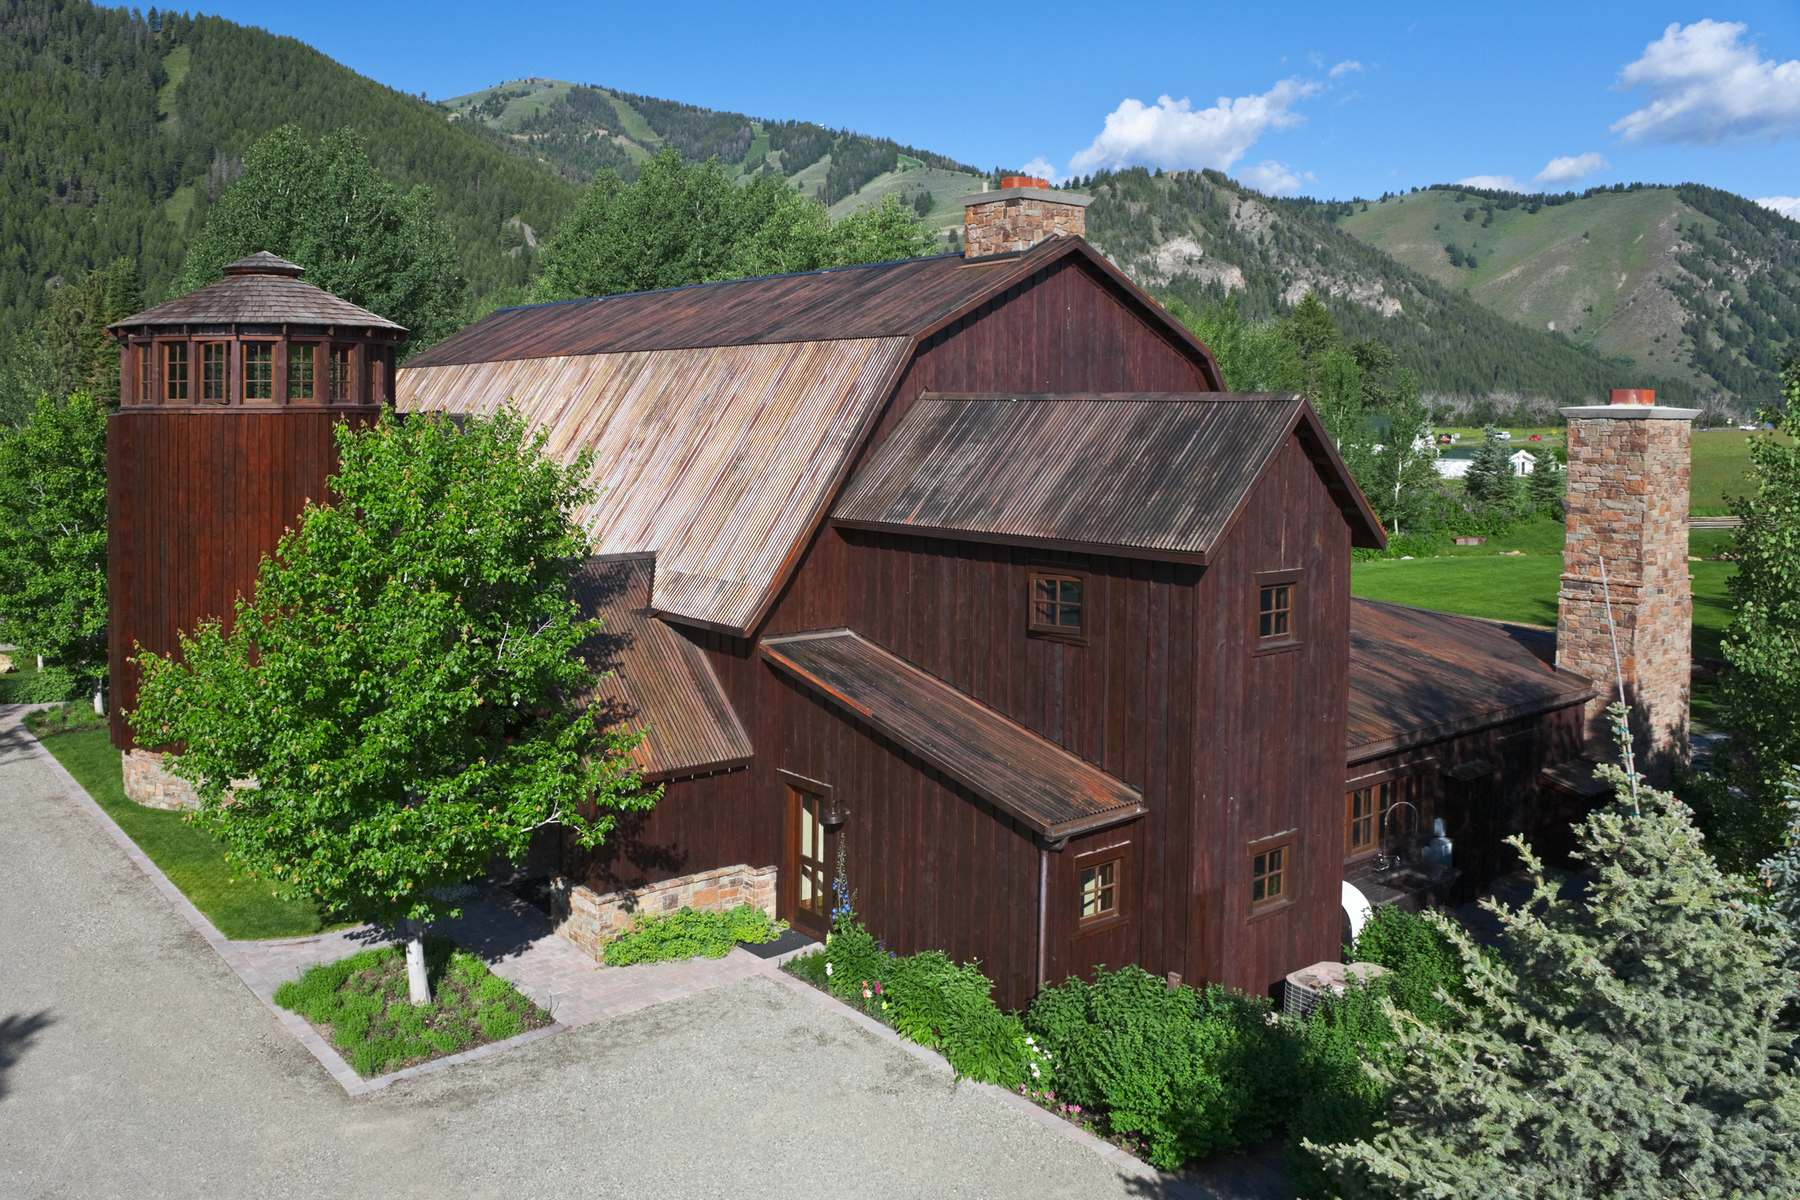 Casa Unifamiliar por un Venta en Sun Valley's Historic Western Family Compound 105 Farnlun Place Sun Valley, Idaho 83353 Estados Unidos